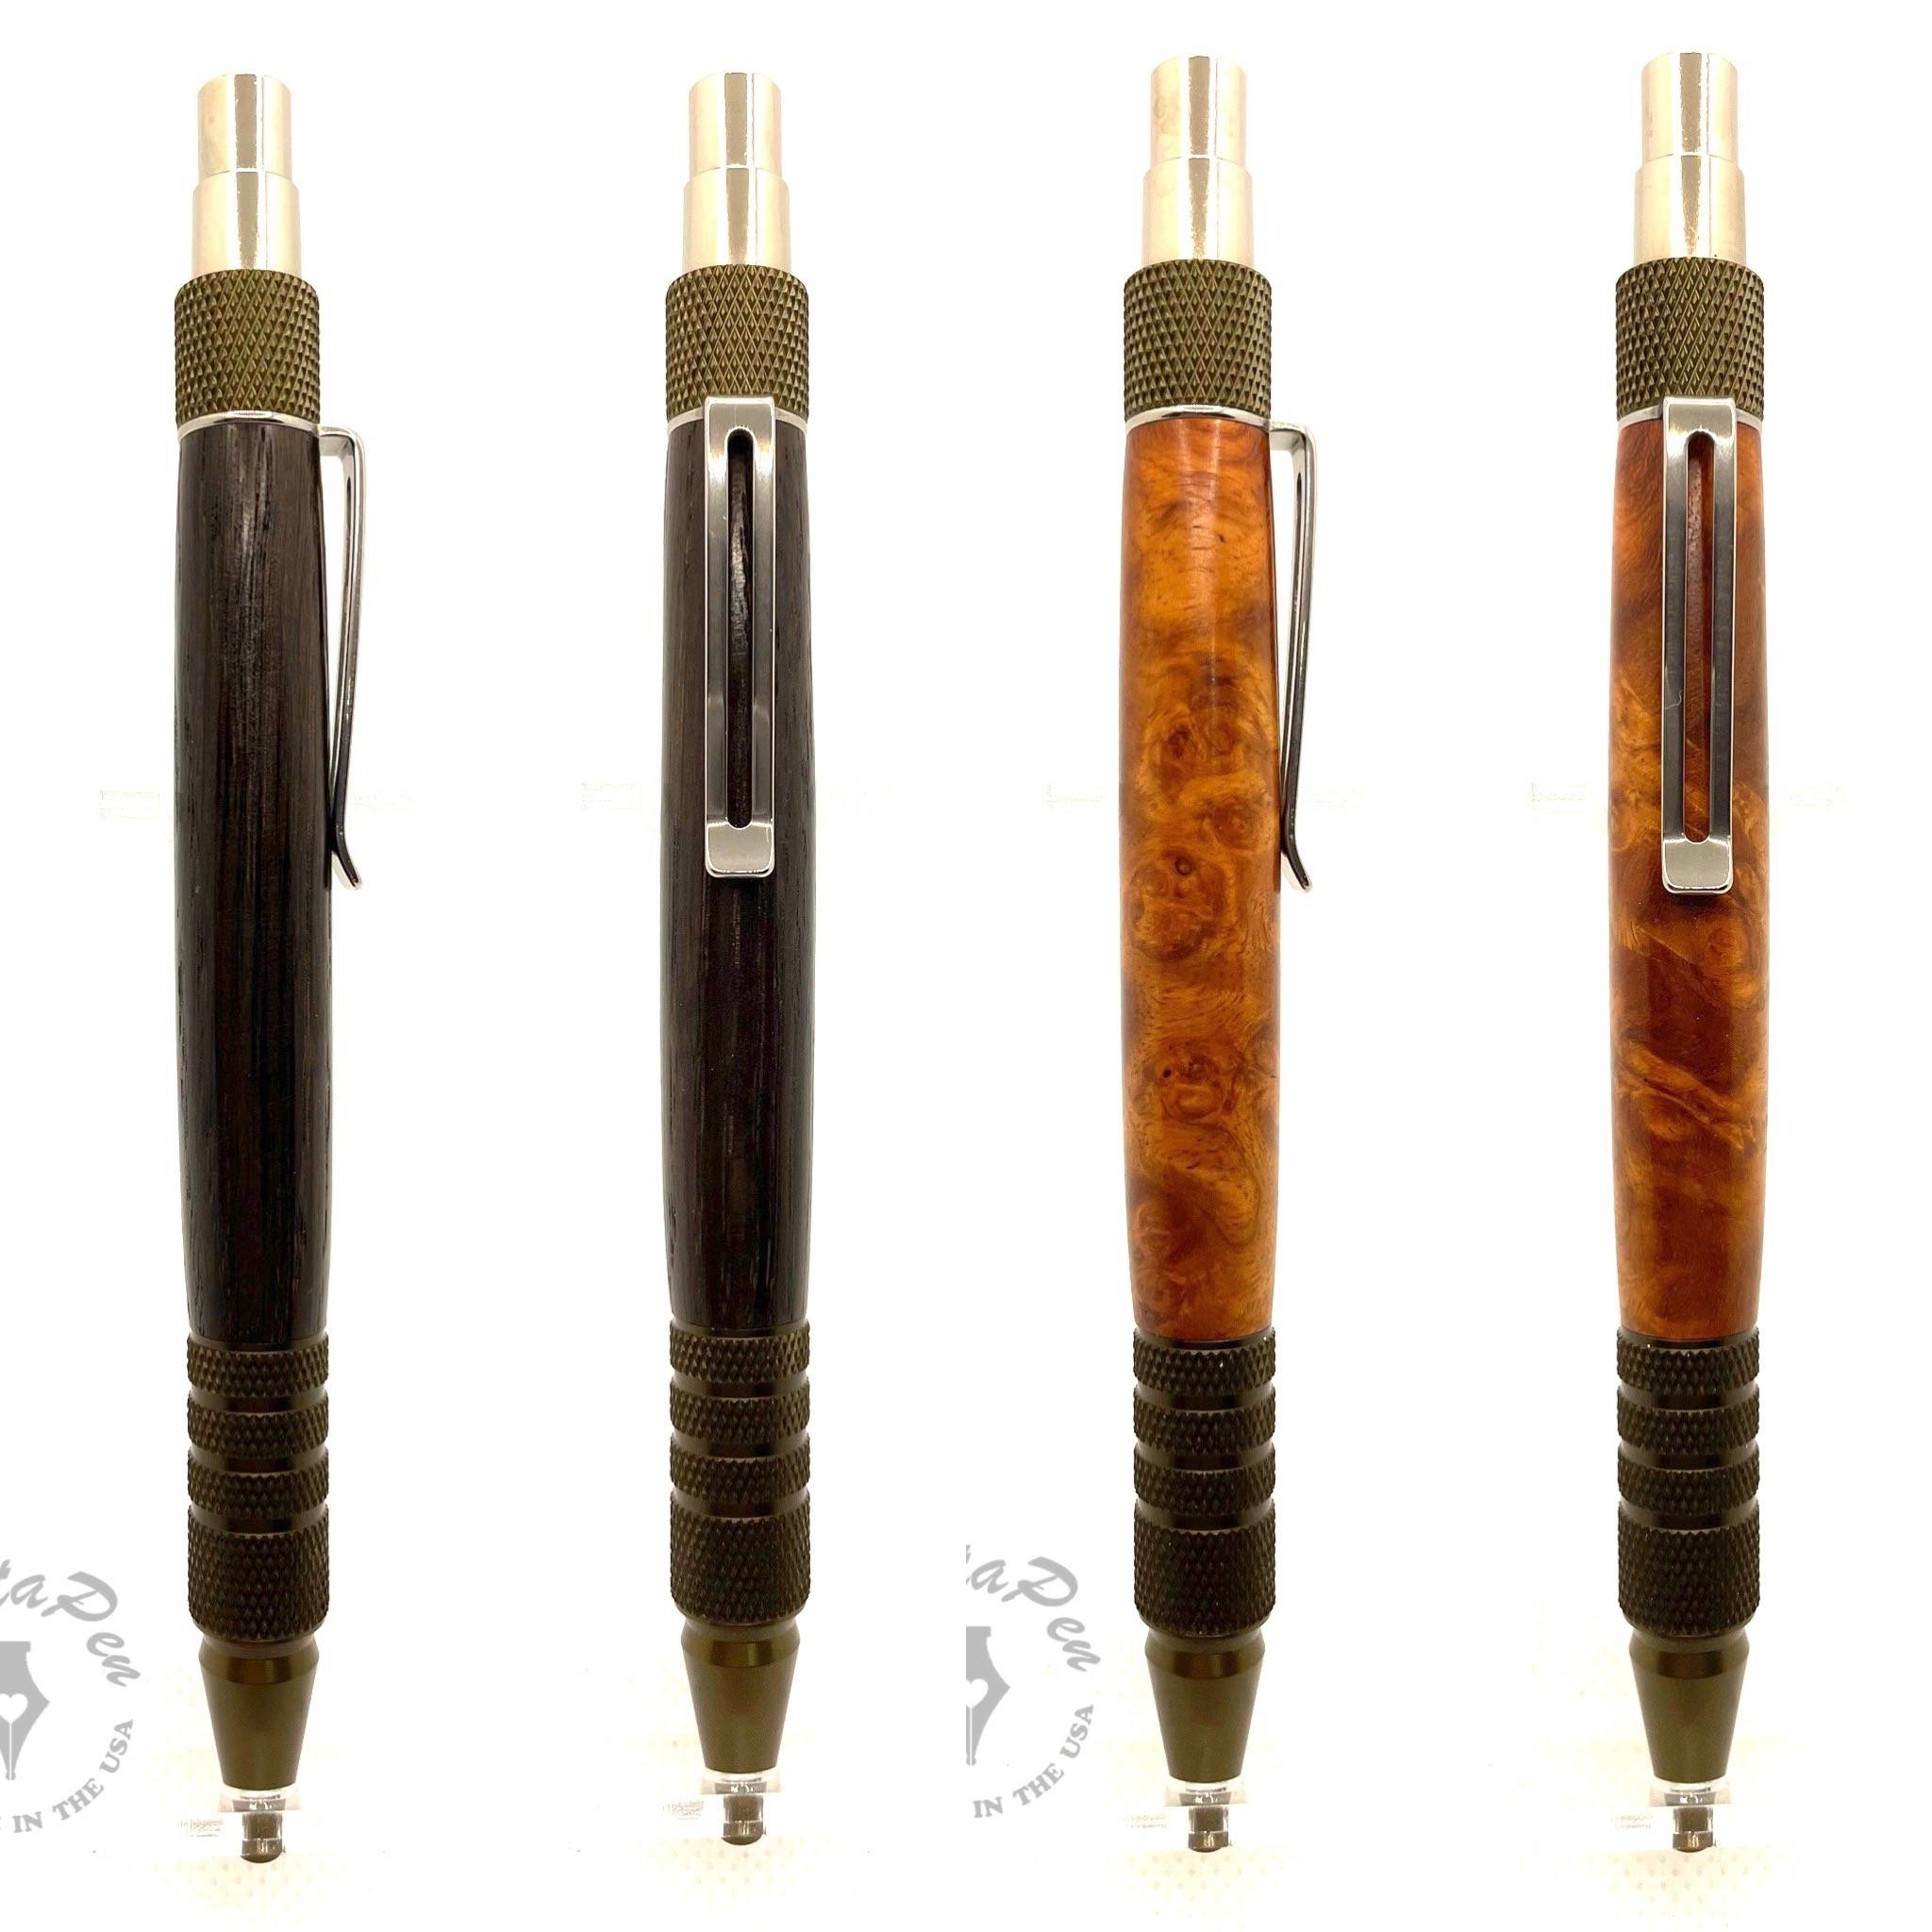 A couple EDC click pens created today that are available